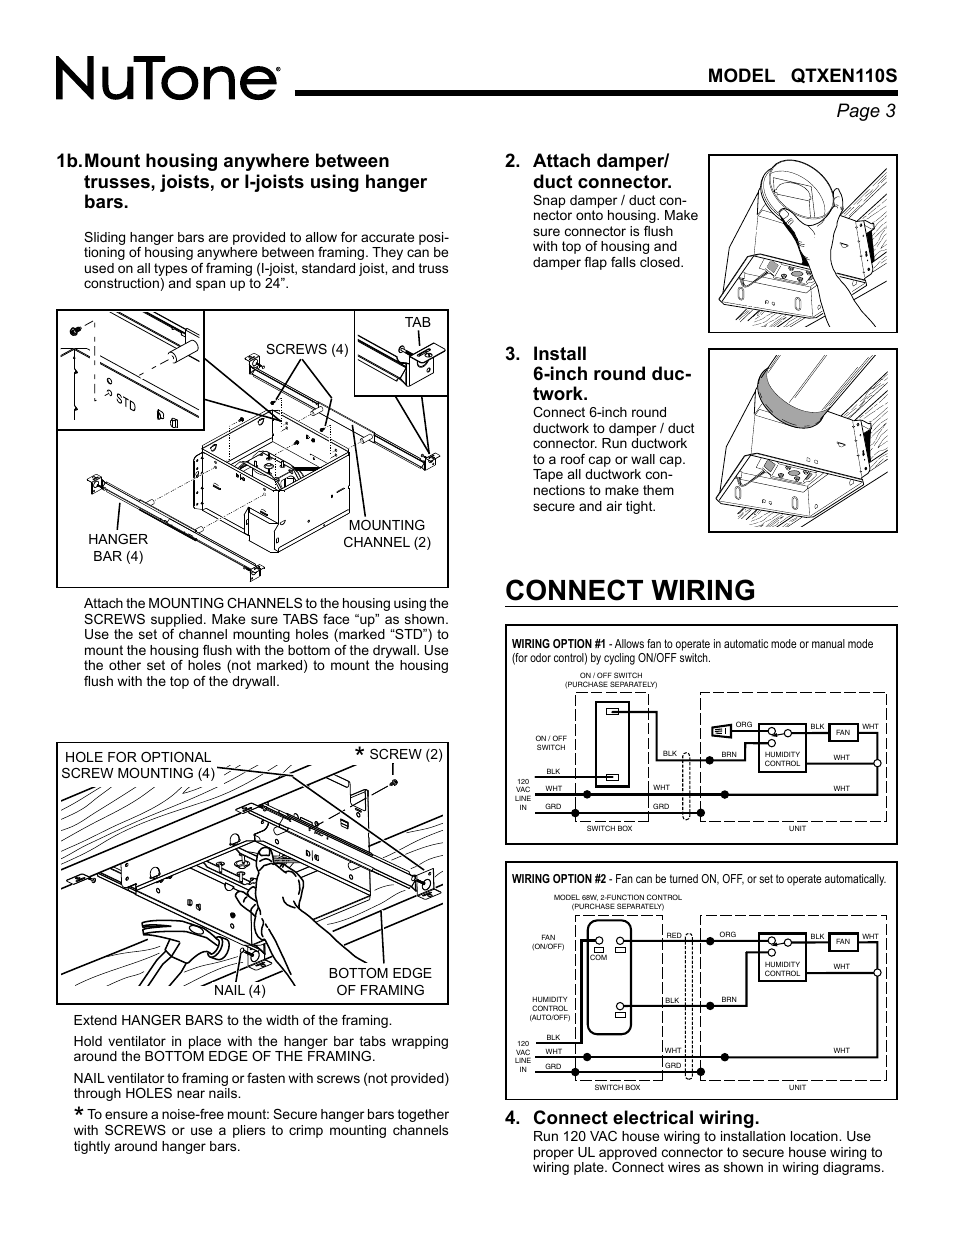 Wiring Diagram For Nutone Qtxen110s - Enthusiast Wiring Diagrams •